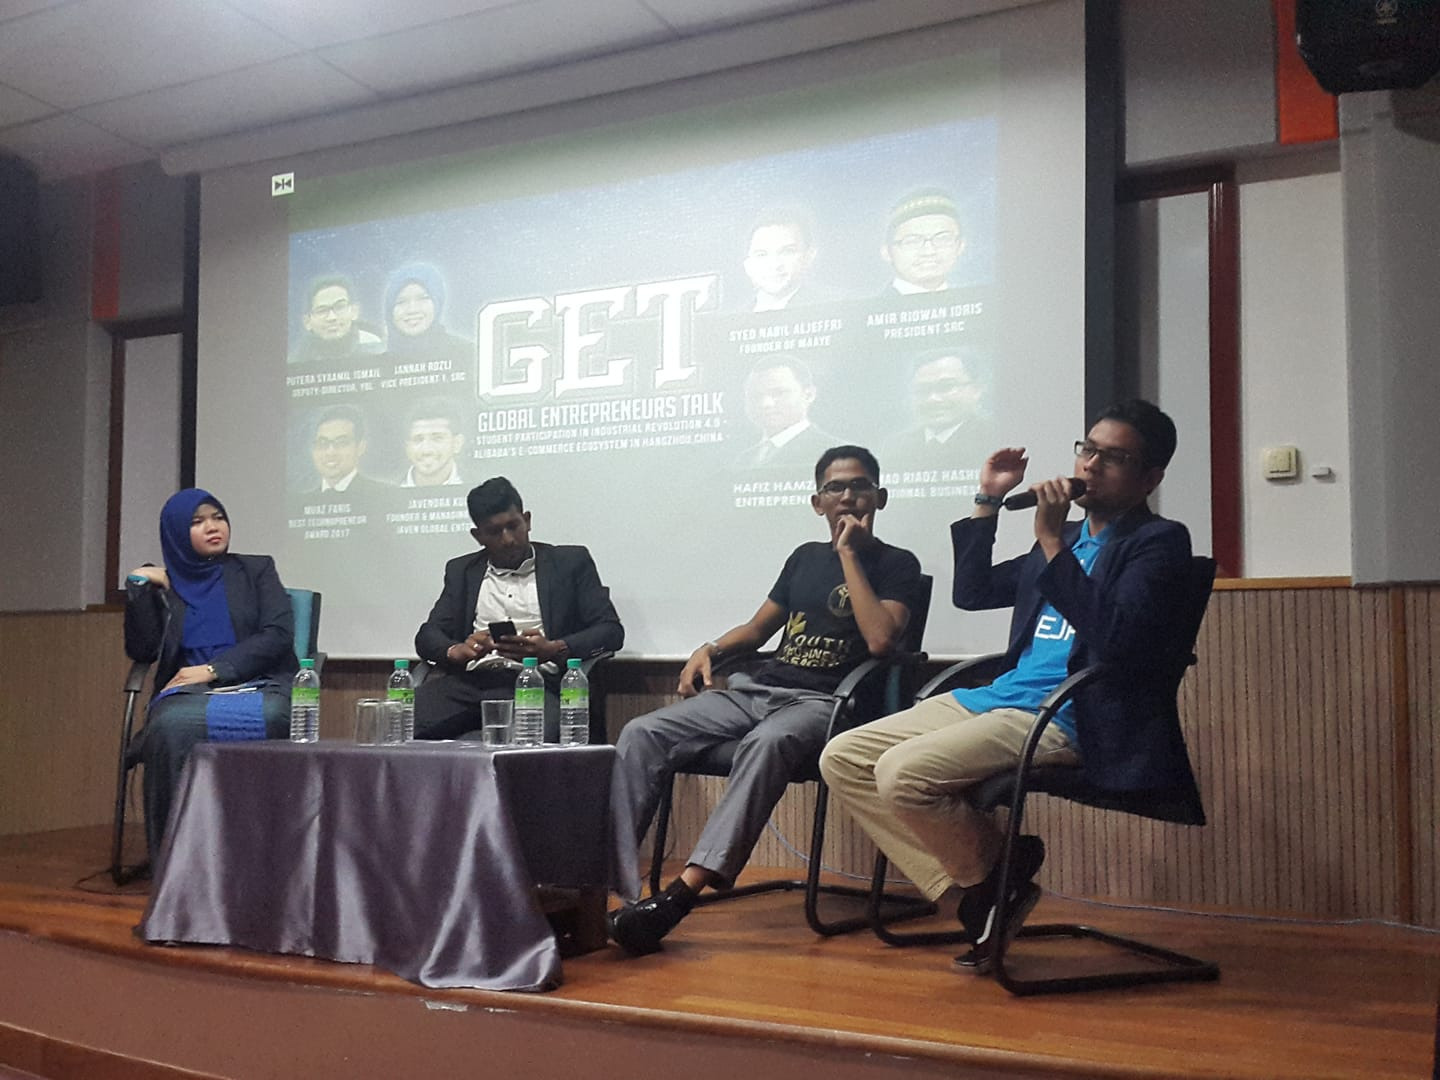 Global Entrepreneurs Talk (GET) - Muaz Faris